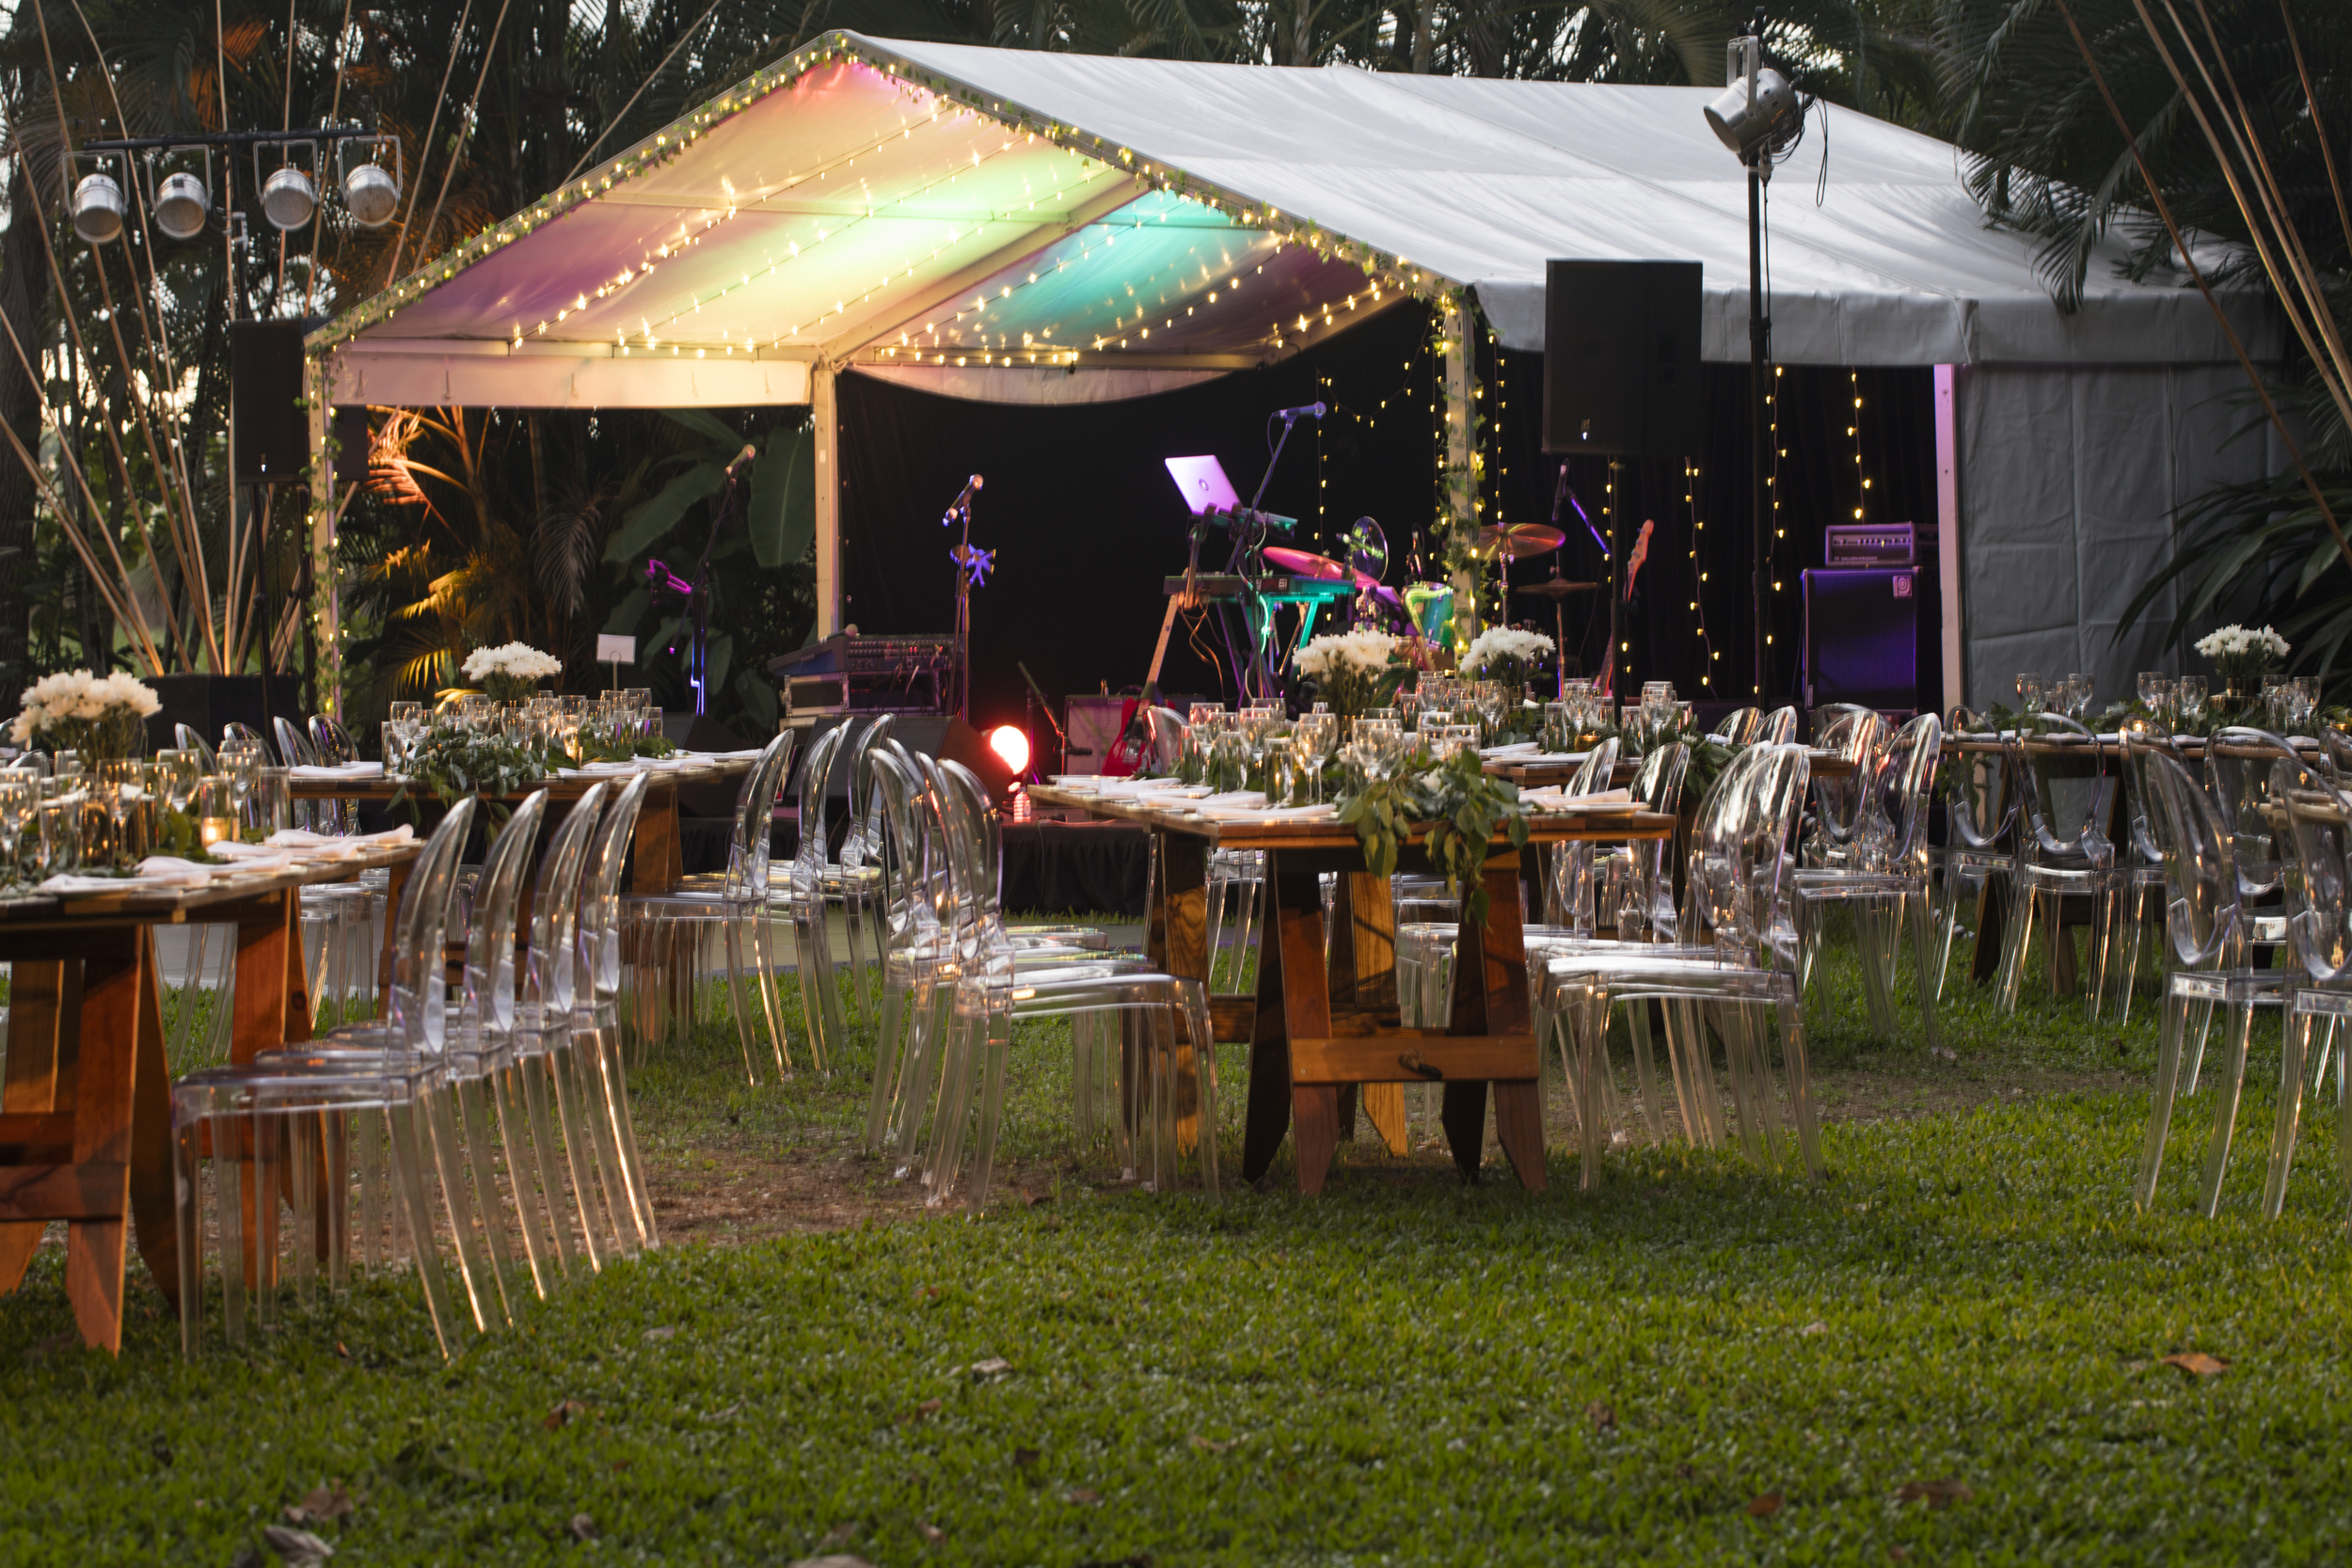 marquee grotto.jpg